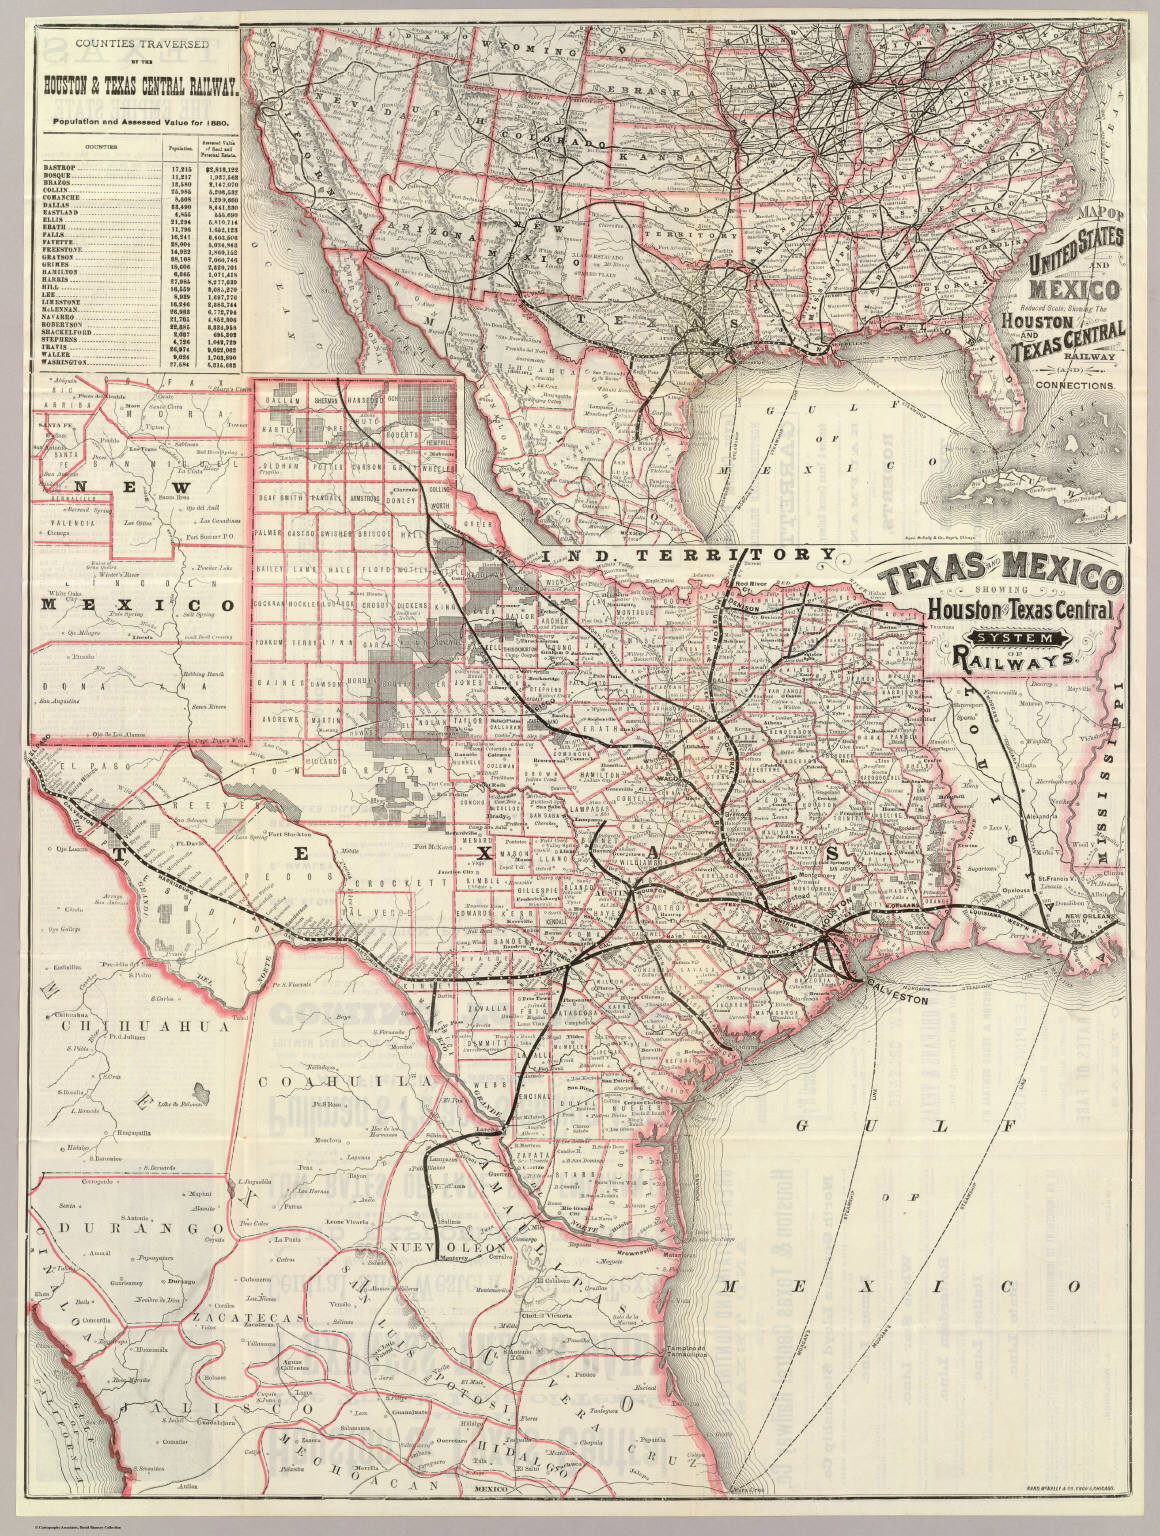 texas and mexico houston and texas central railways. texas and mexico houston and texas central railways  david